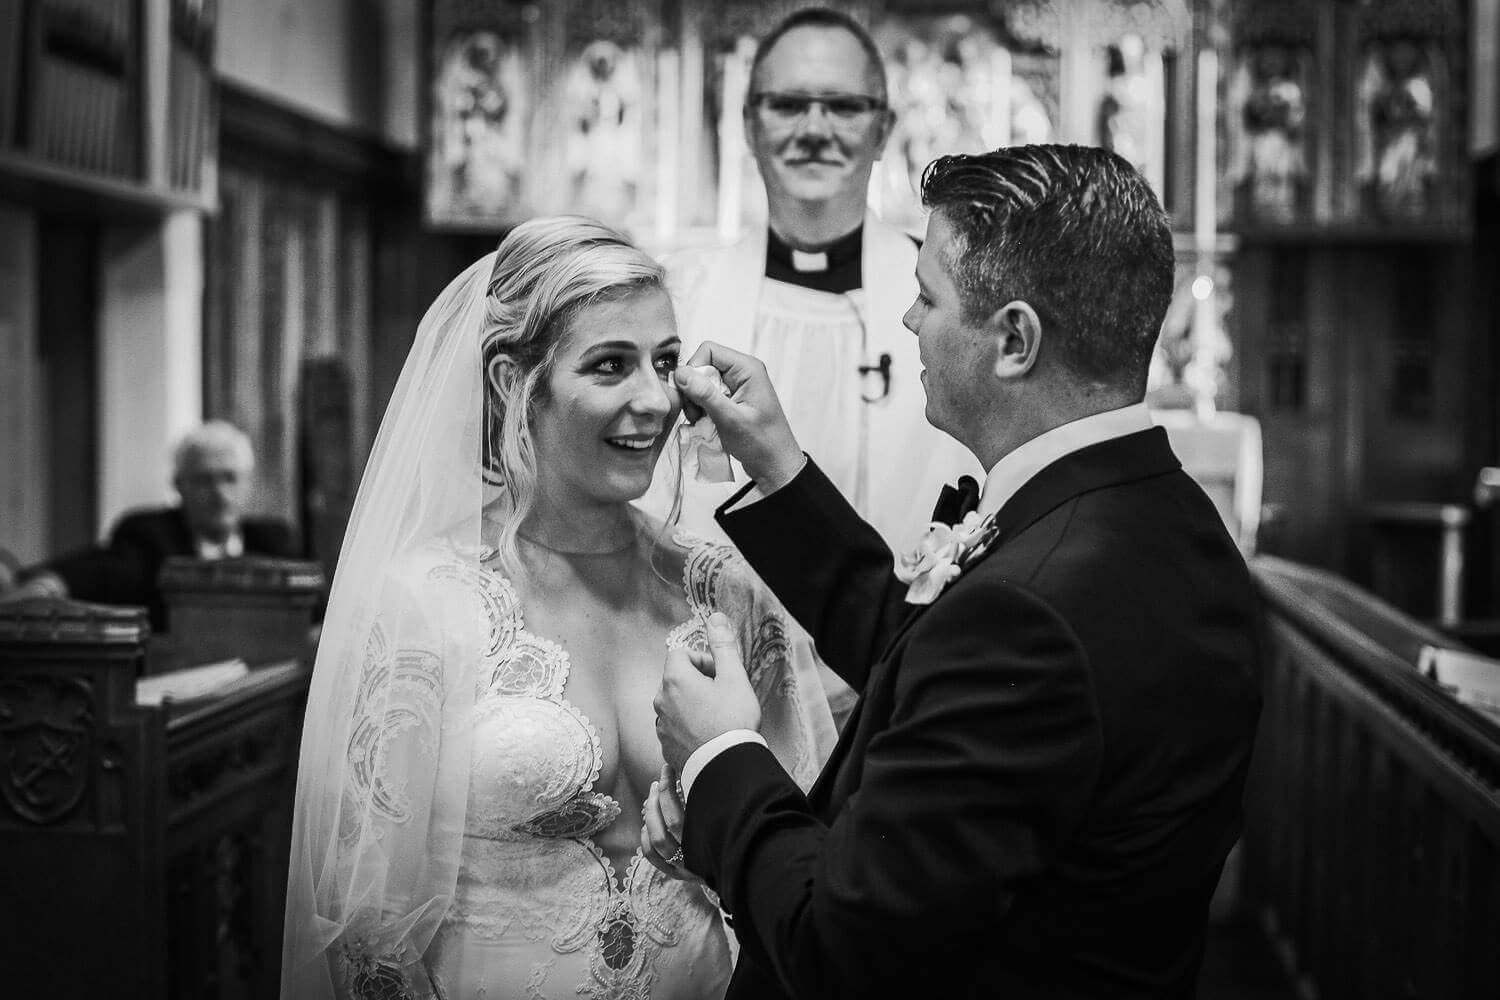 Black and white photo of groom whipping tear from brides face during wedding ceremony